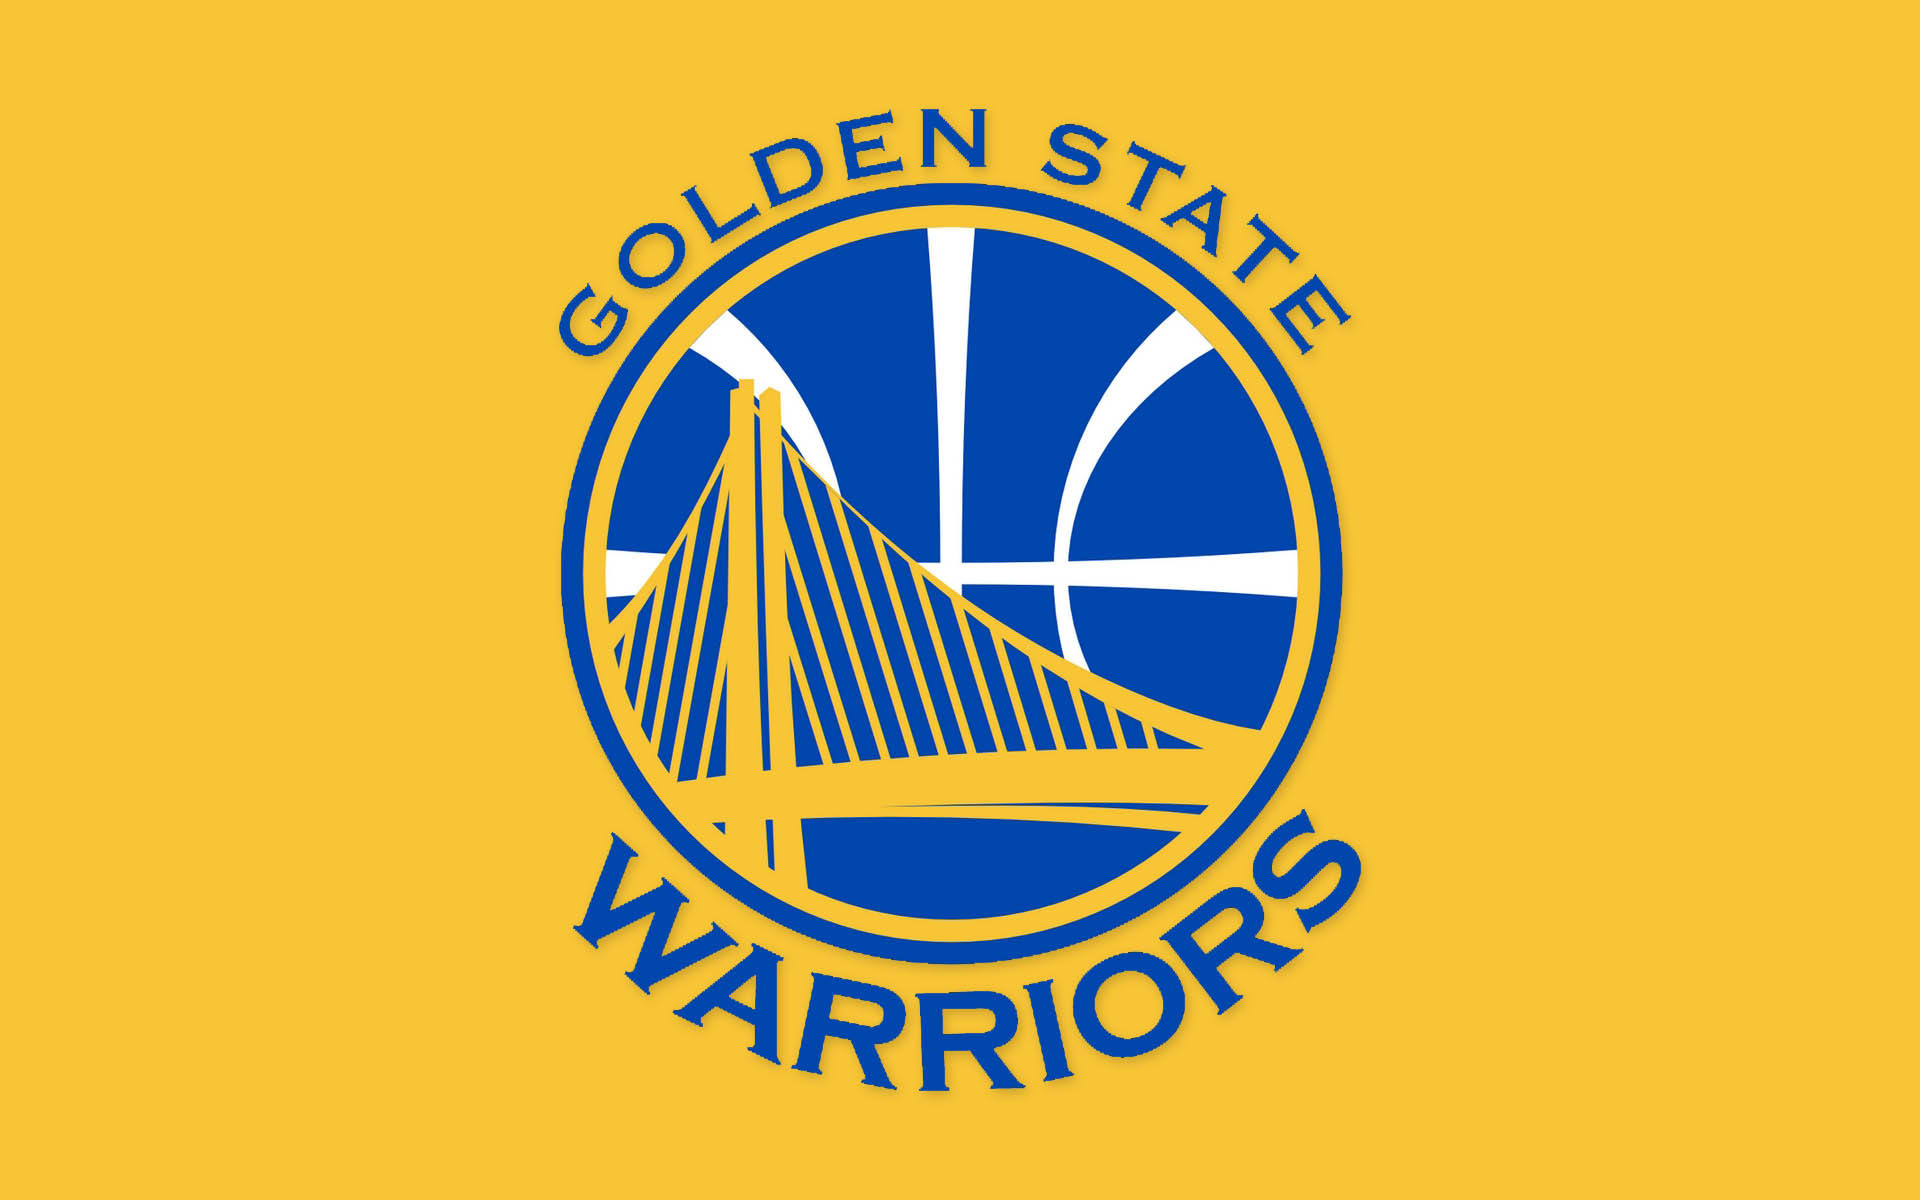 1920x1200 Related wallpapers from Golden State Warriors Finals